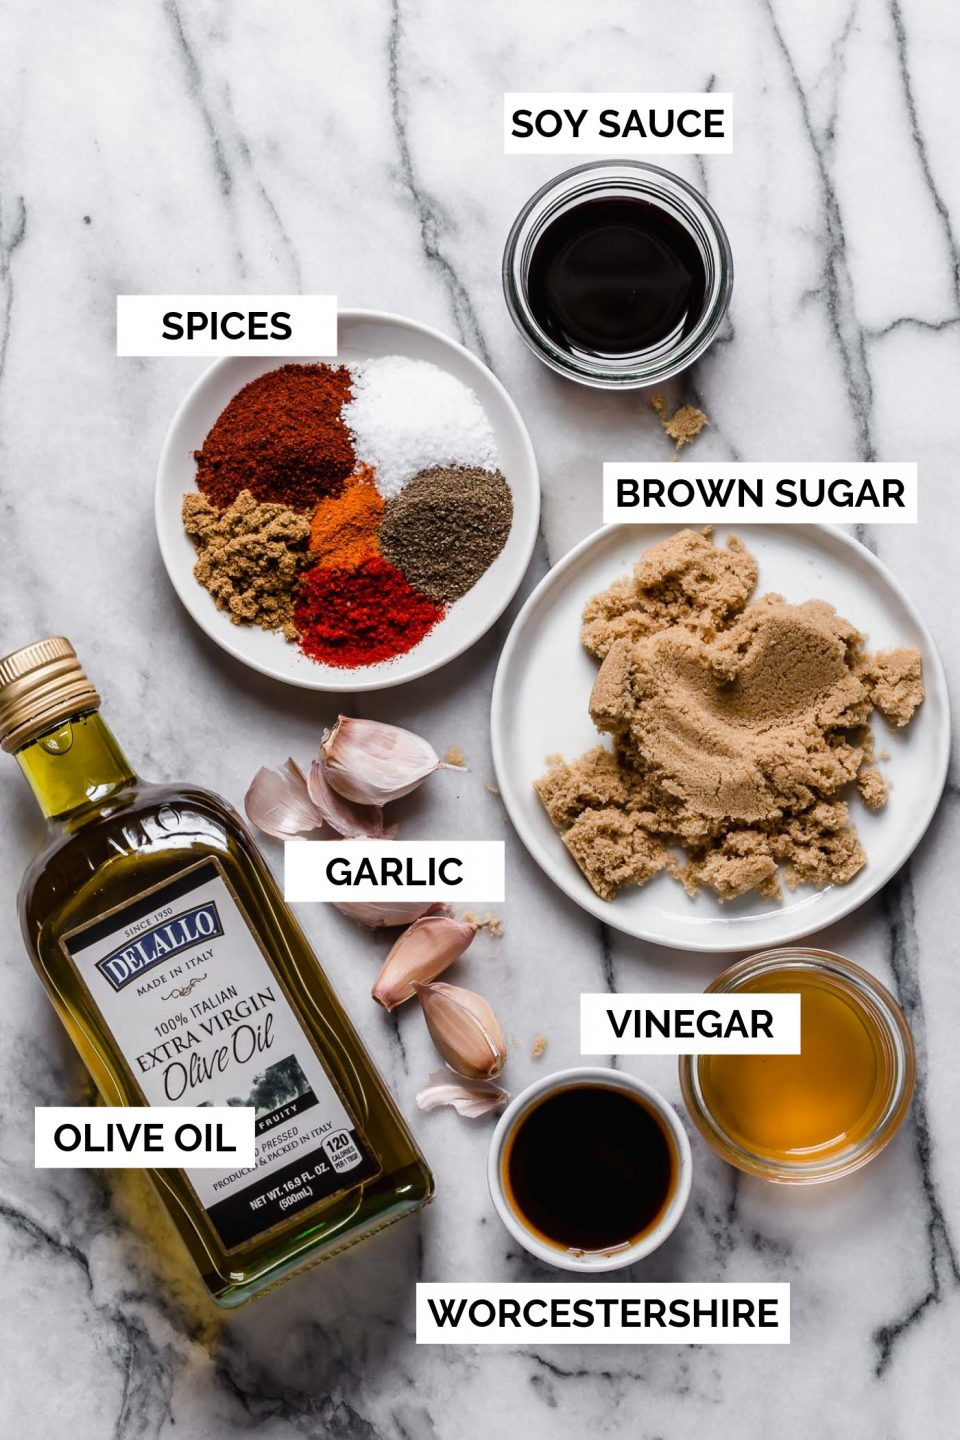 A flat-lay image with text overlay of each of the pantry ingredients (spices, soy sauce, brown sugar, garlic, vinegar, worcestershire, and olive oil) that make up the homemade grilling recipe